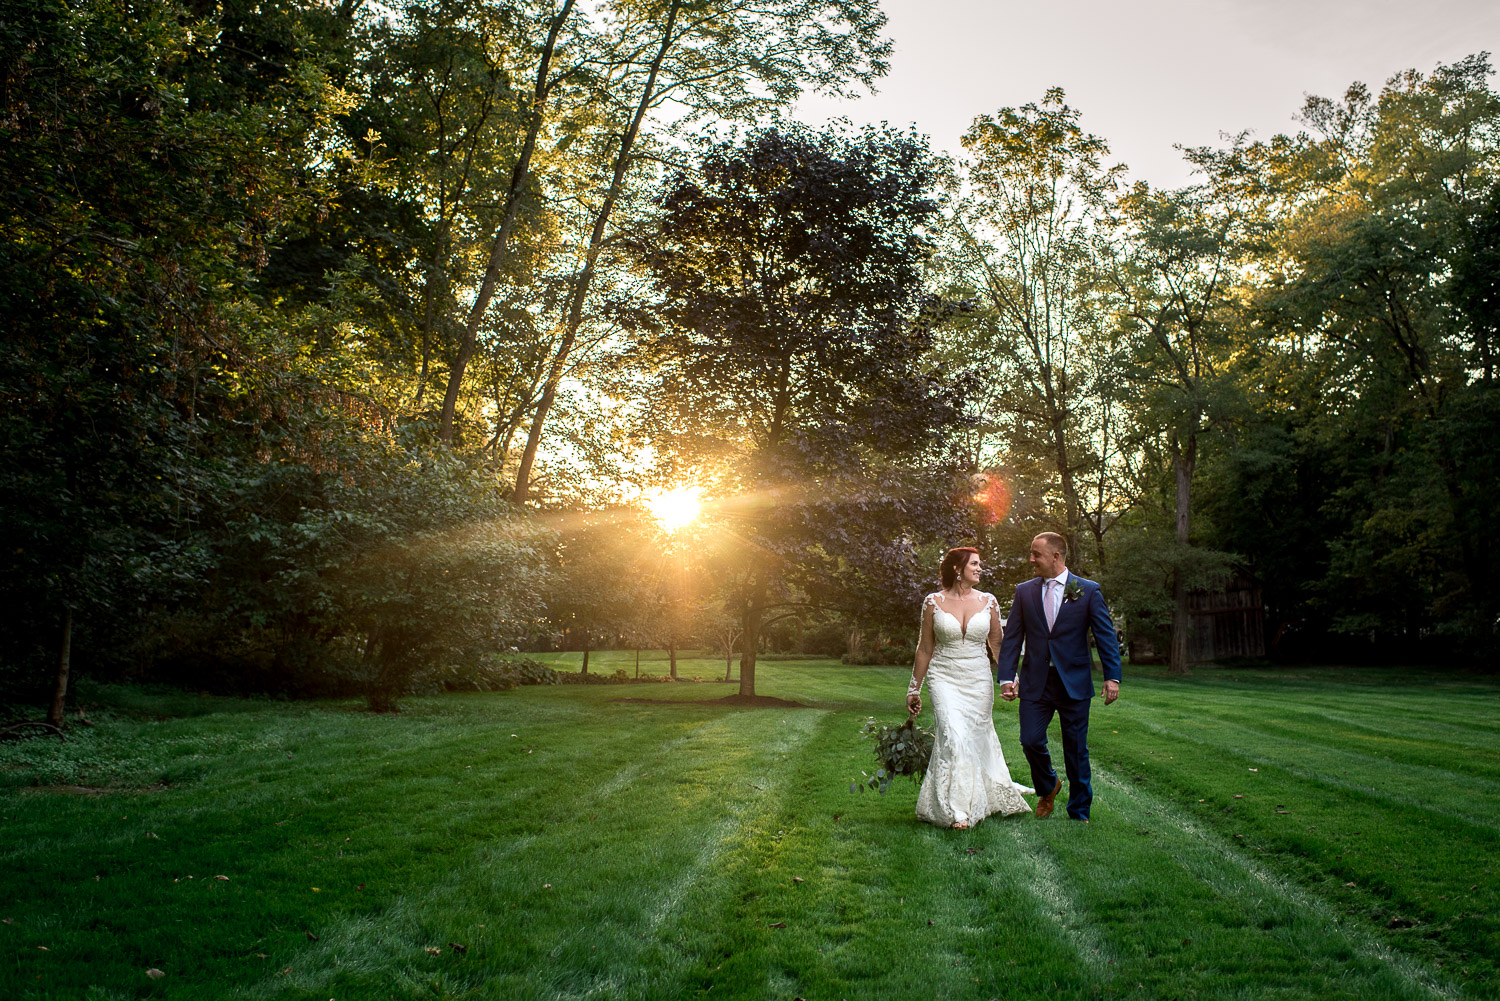 bride and groom portrait during golden hour